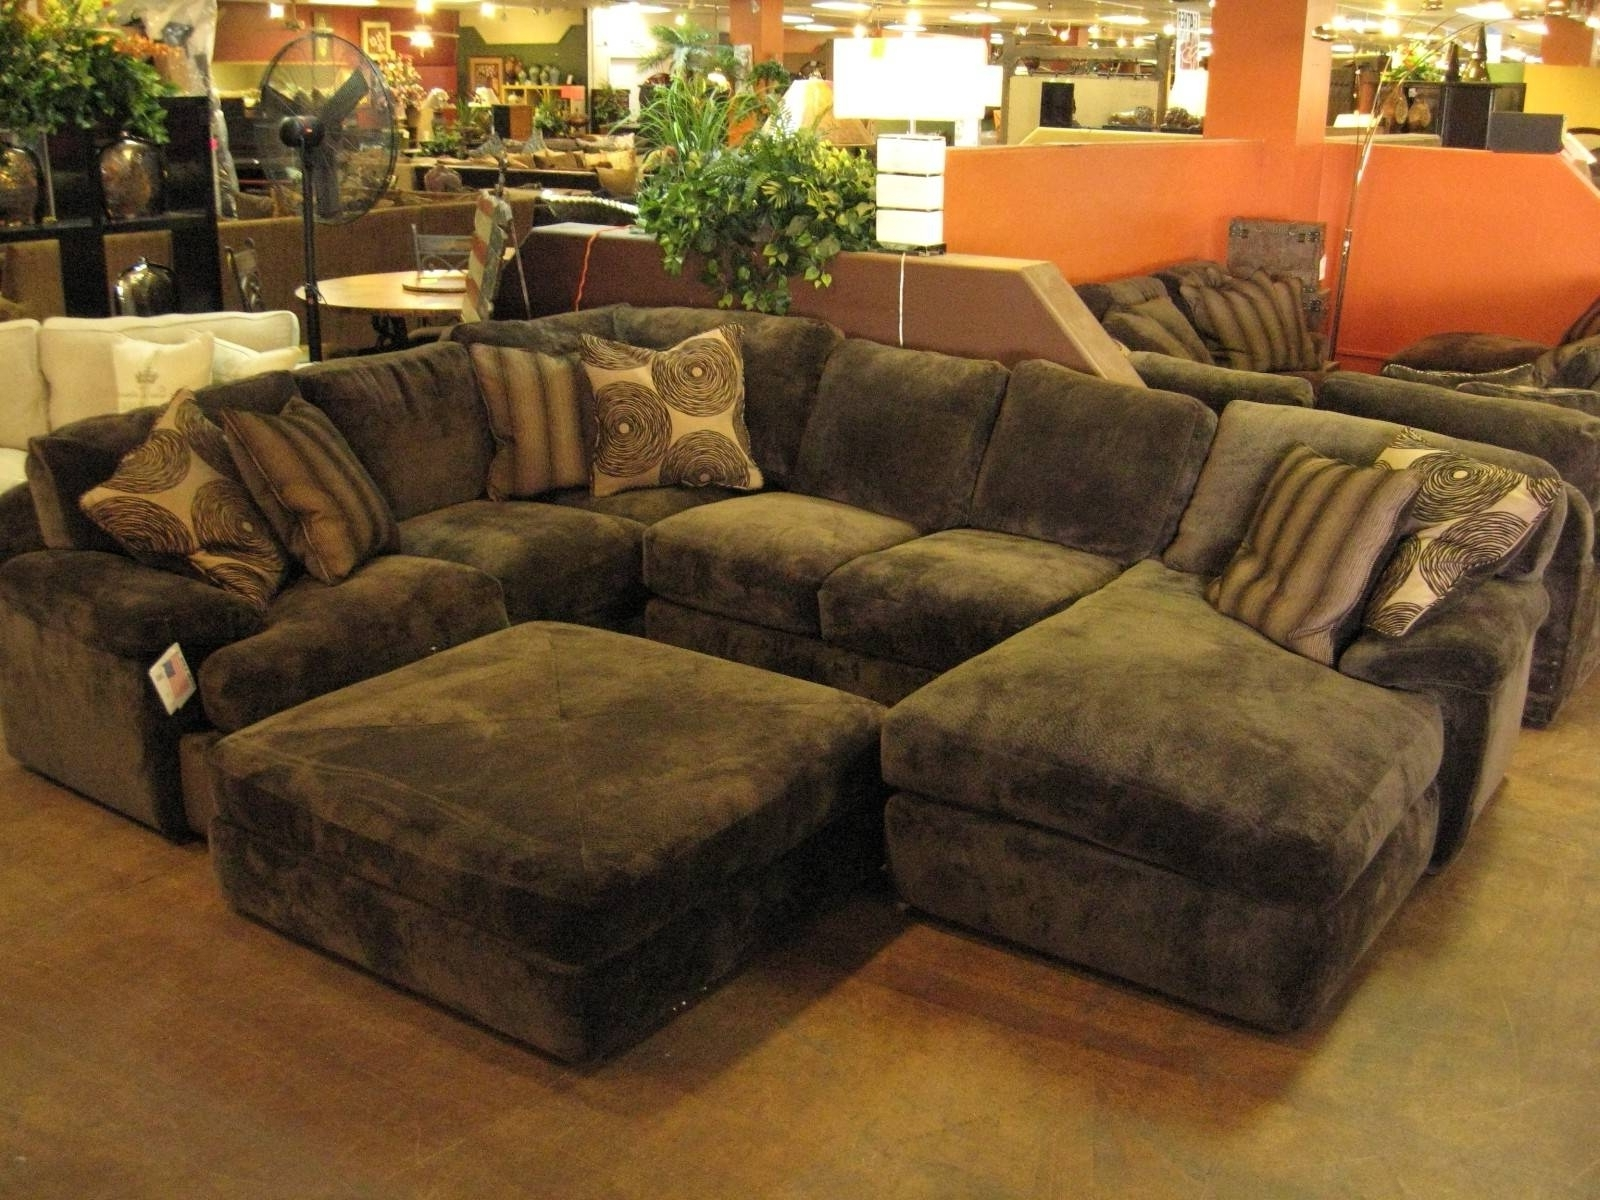 Well Known East Bay Sectional Sofas With Sofa : Craigslist Sectional Illustrious Craigslist Free Section (View 8 of 20)